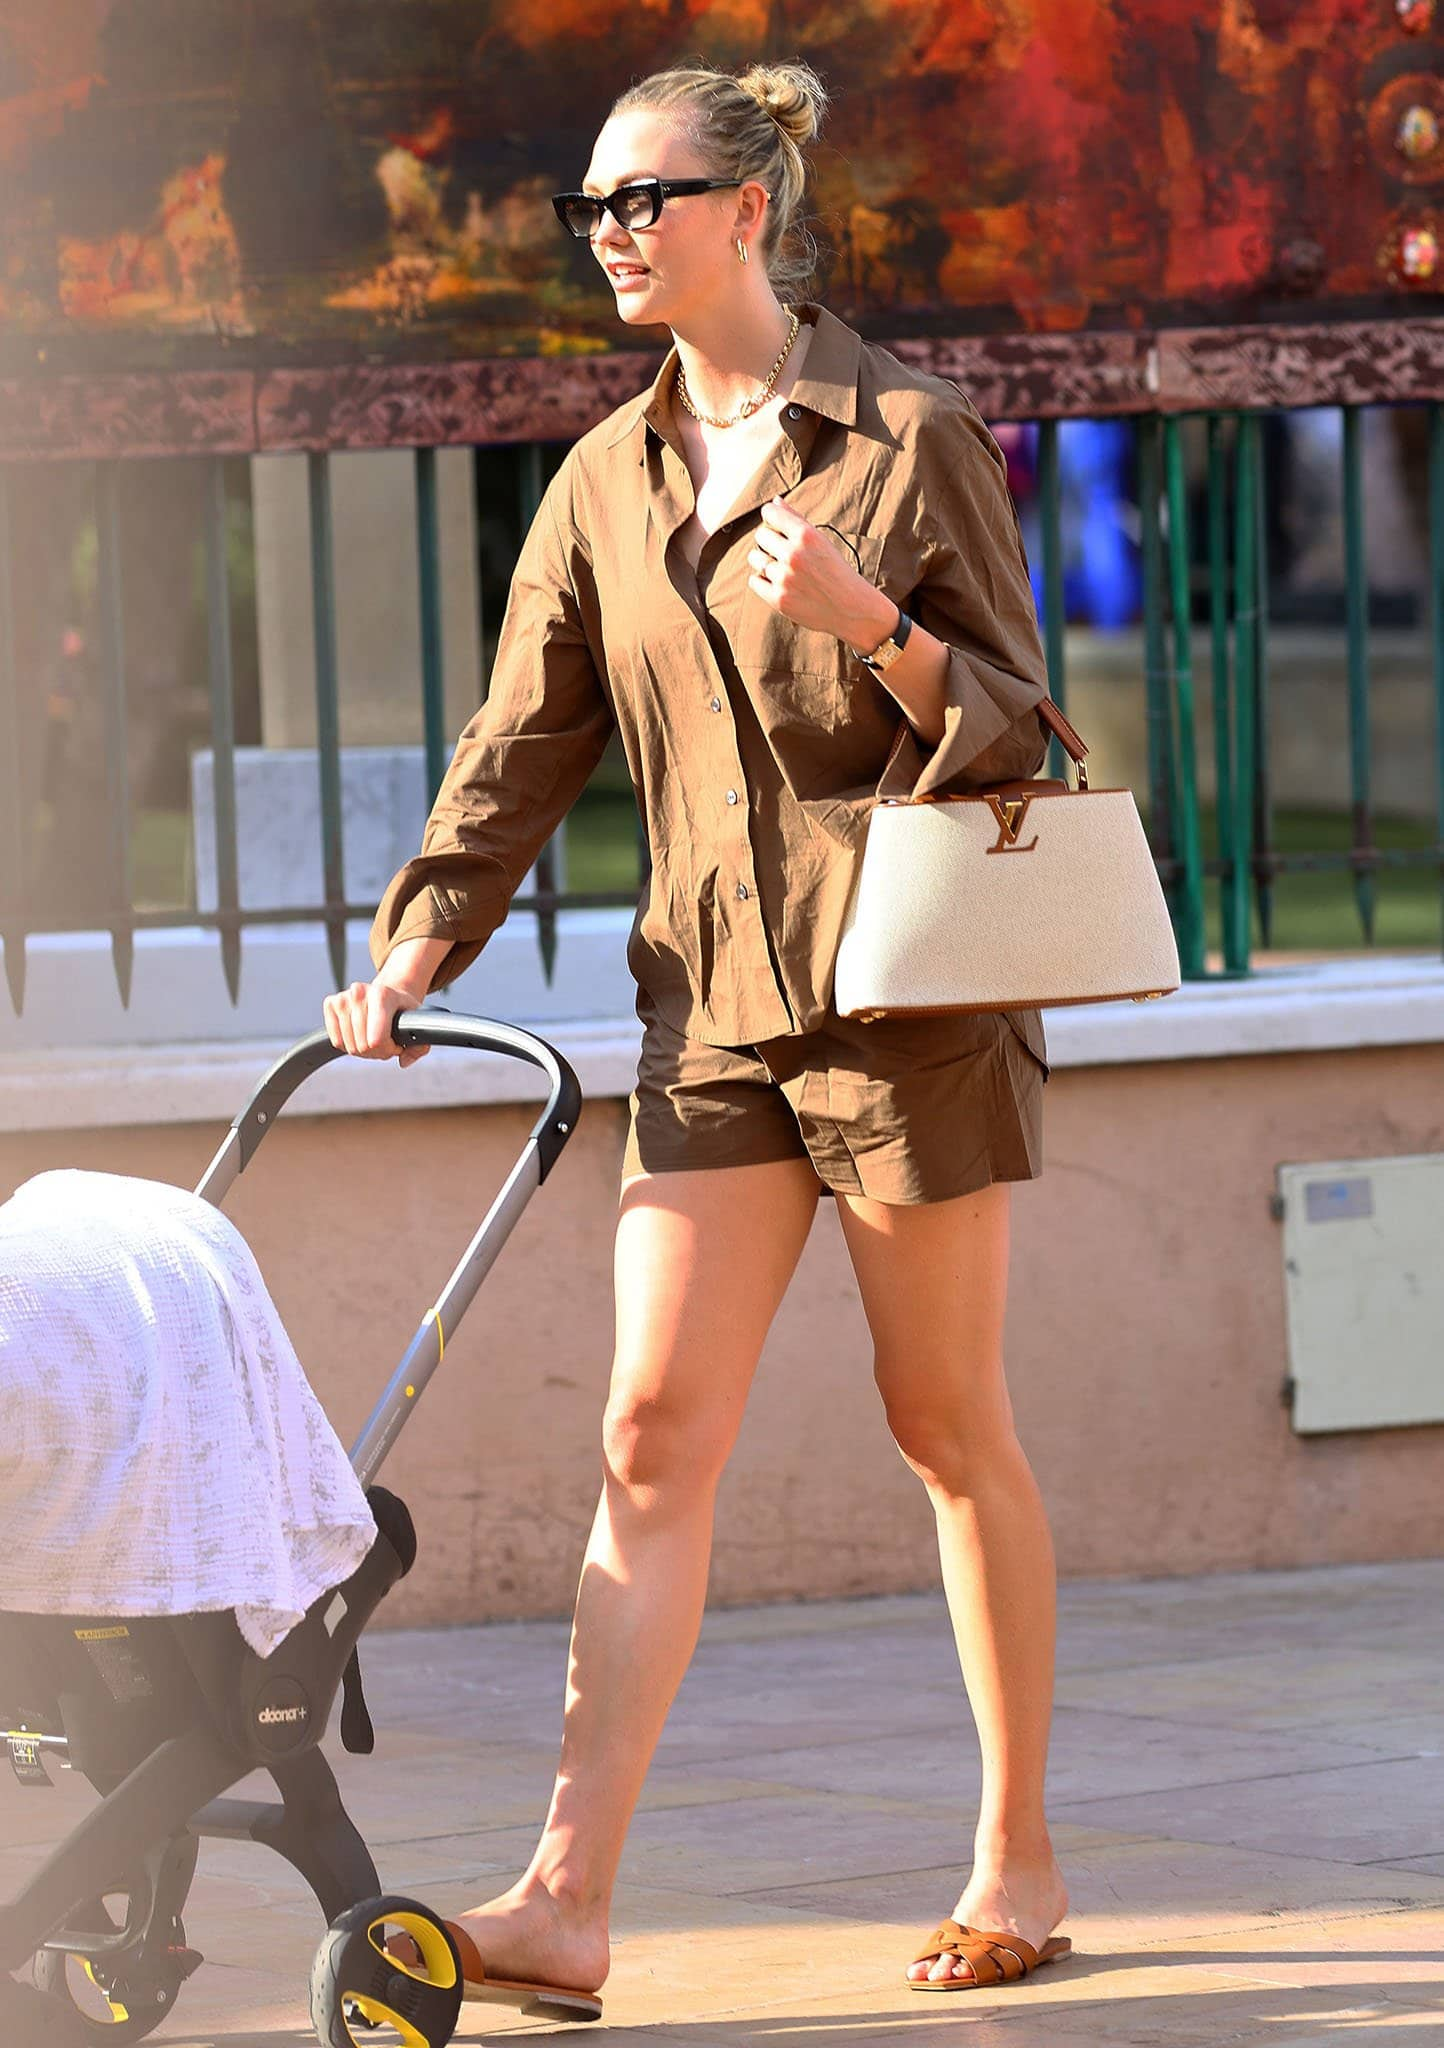 Karlie Kloss and her son Levi Joseph strolling around Saint-Tropez in France on July 24, 2021